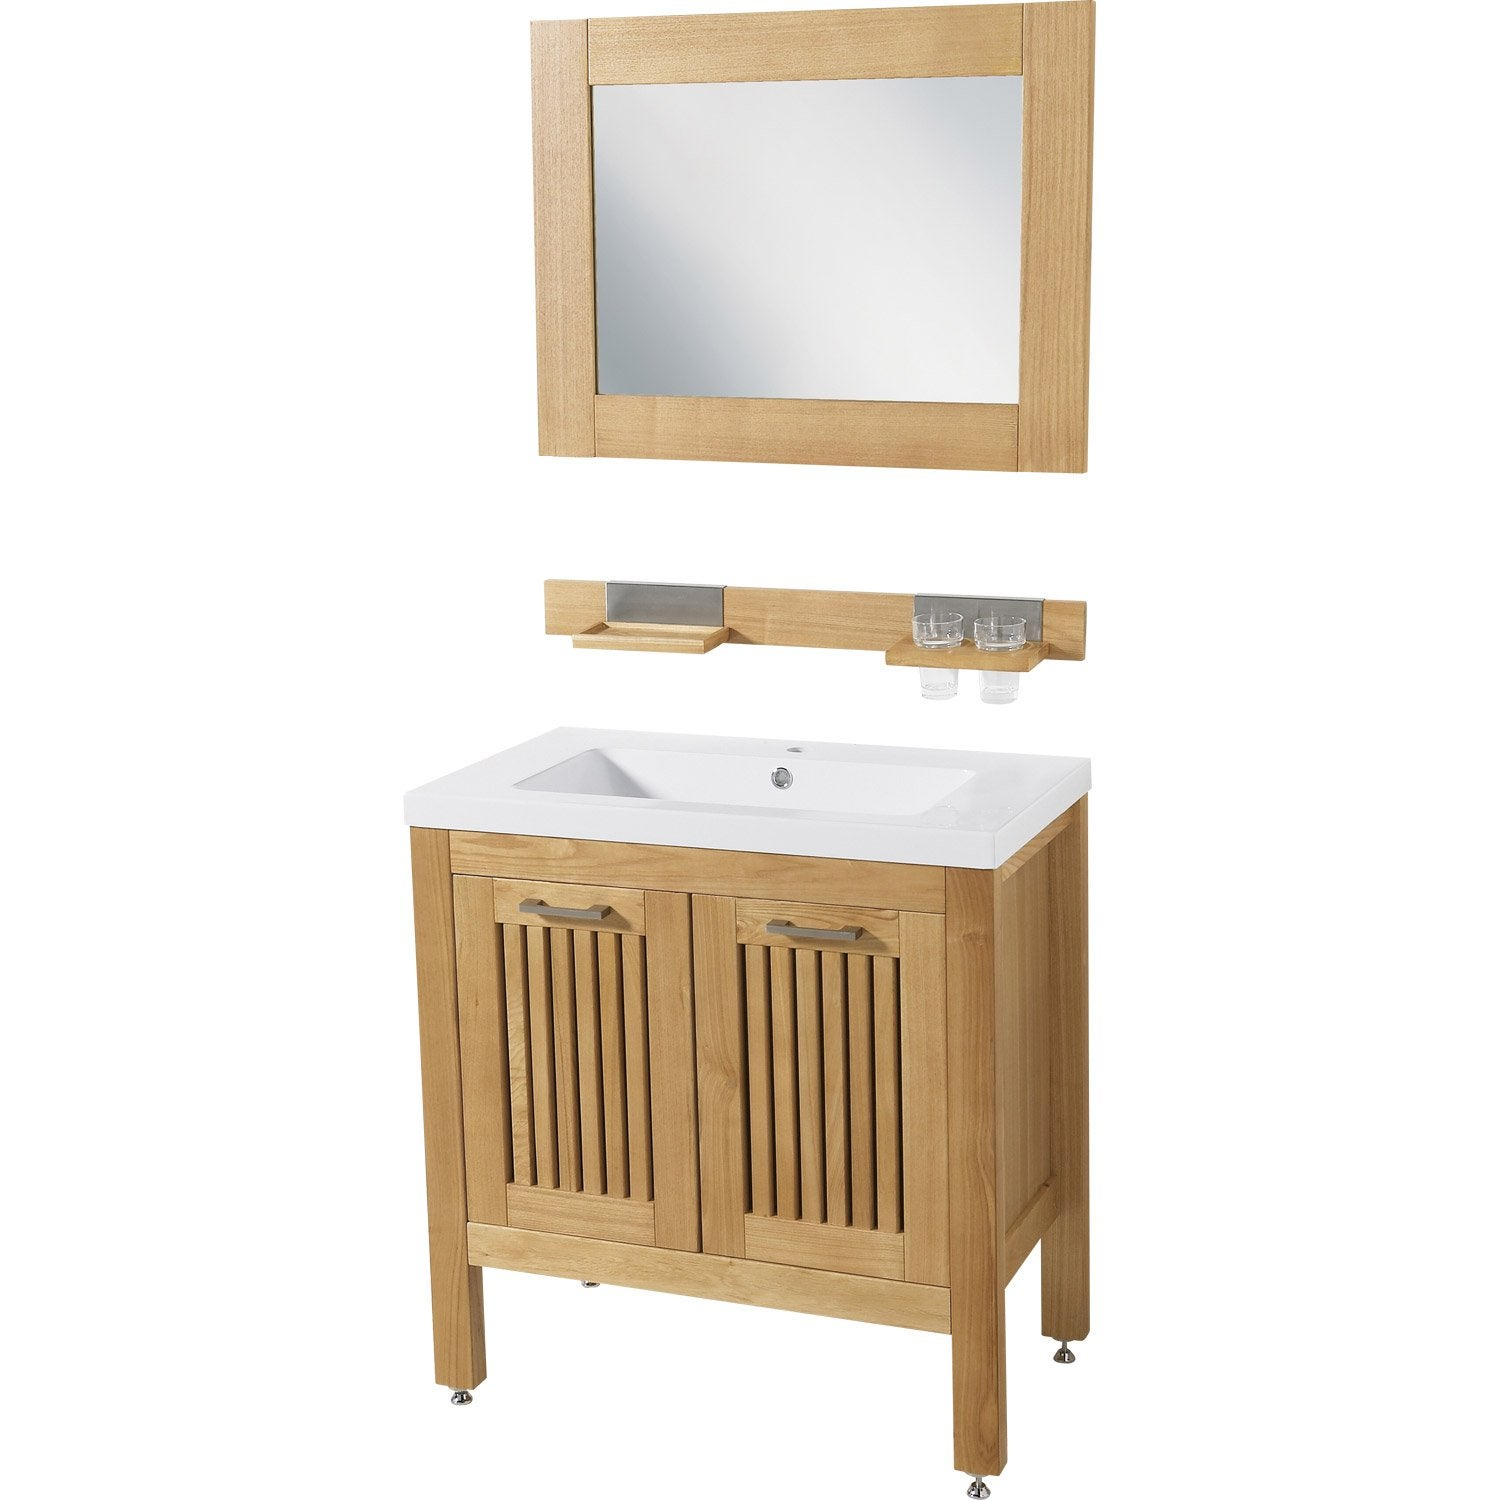 Mobilier table leroy merlin meuble sous lavabo - Leroy merlin meuble lavabo ...